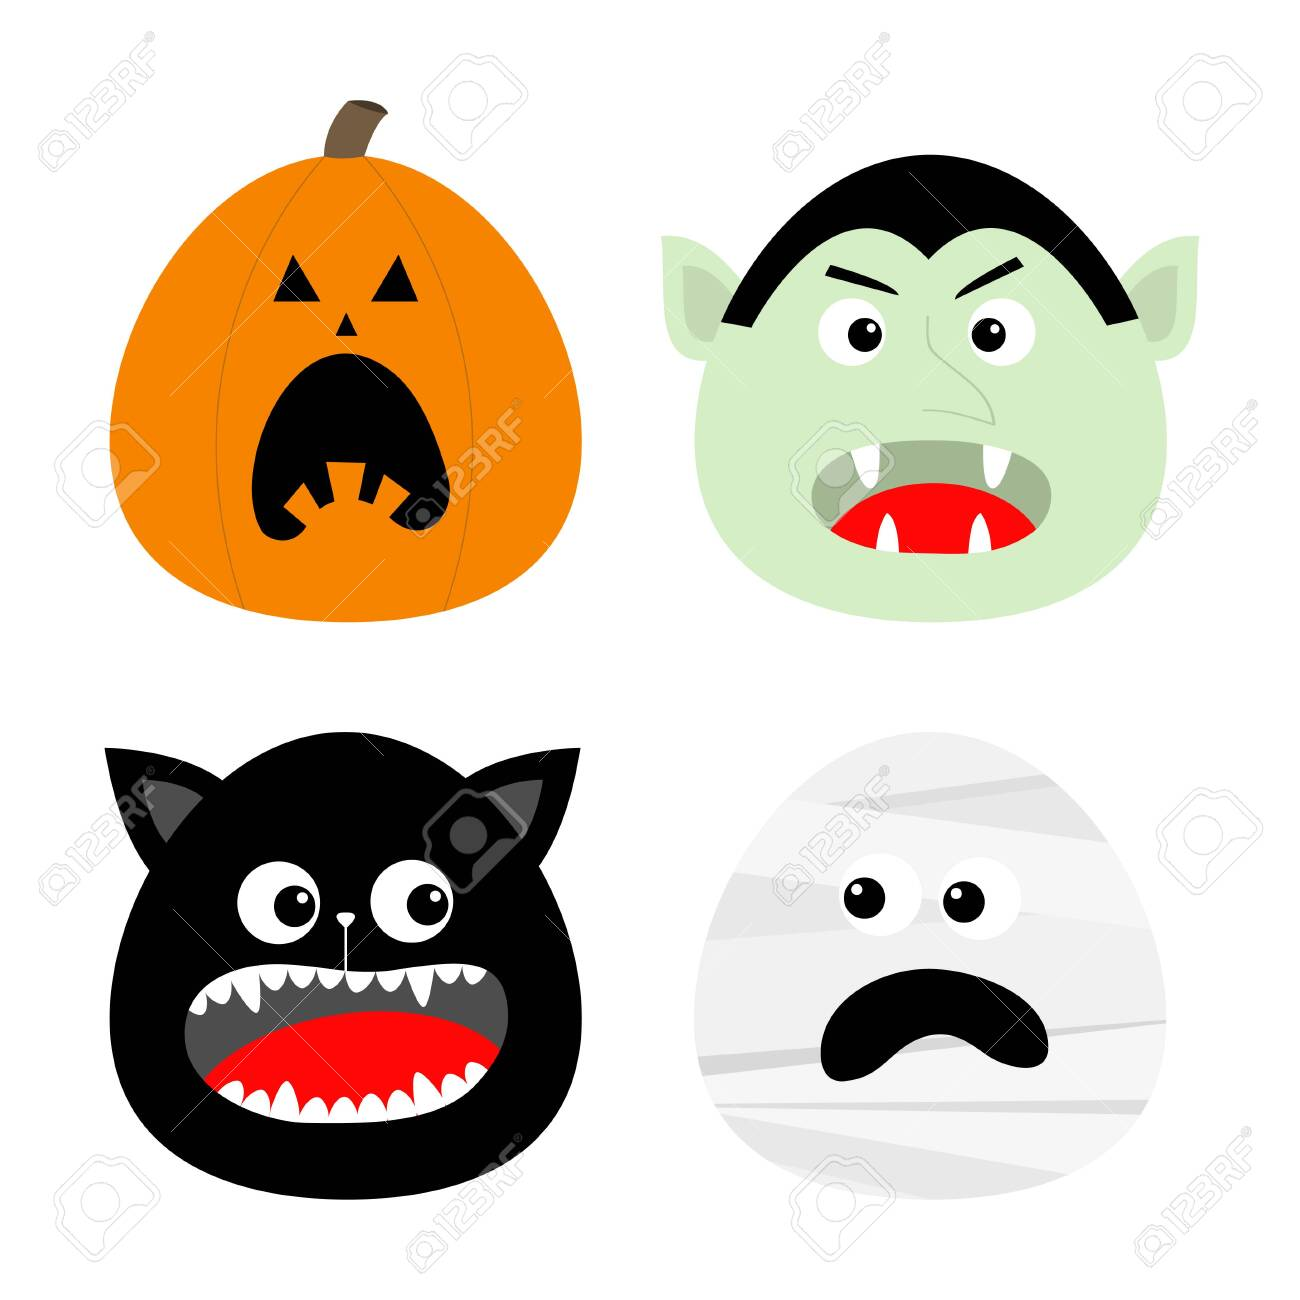 Happy Halloween icon set. Pumpkin, Vampire count Dracula, Mummy, Cat round face head. Cute cartoon funny spooky baby character. Greeting card. Flat design Orange background. Vector illustration - 132208845